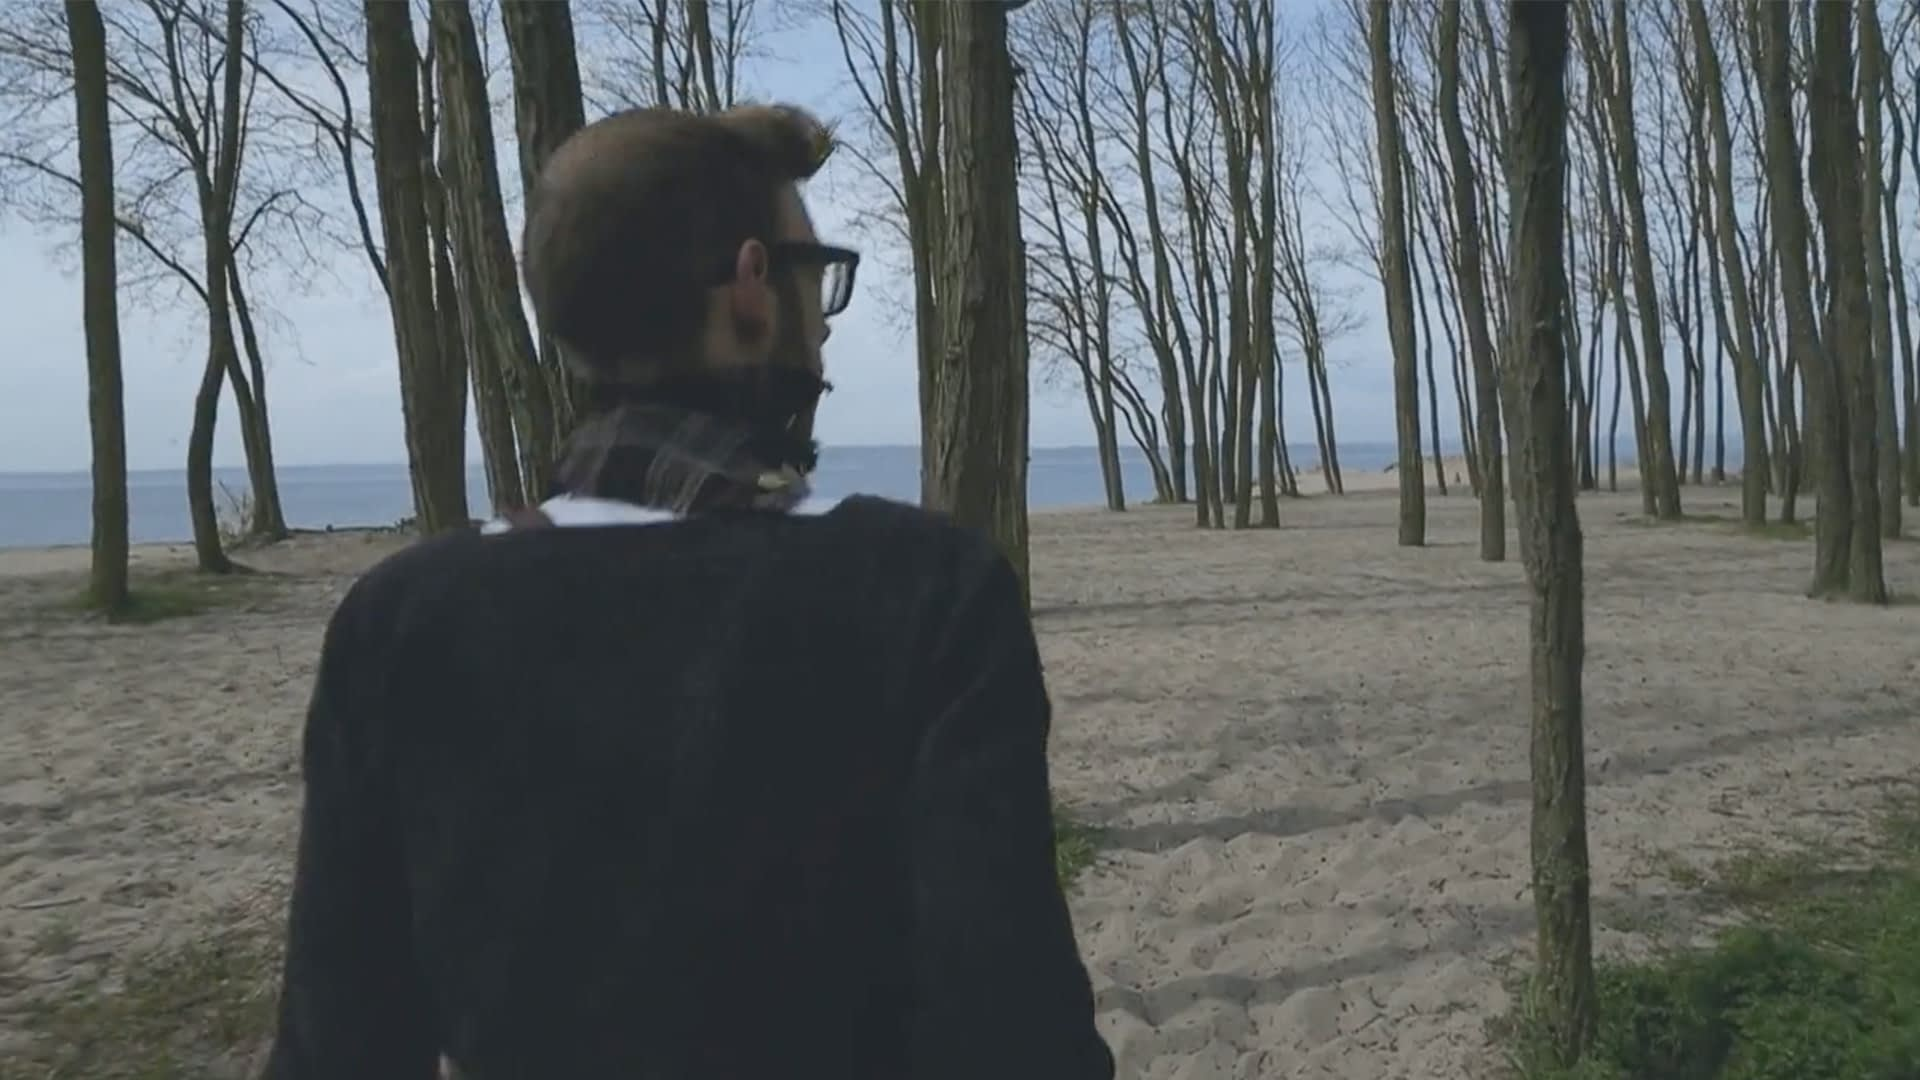 Man with a scarf and sweater is walking through a forest of bear trees near the beach.